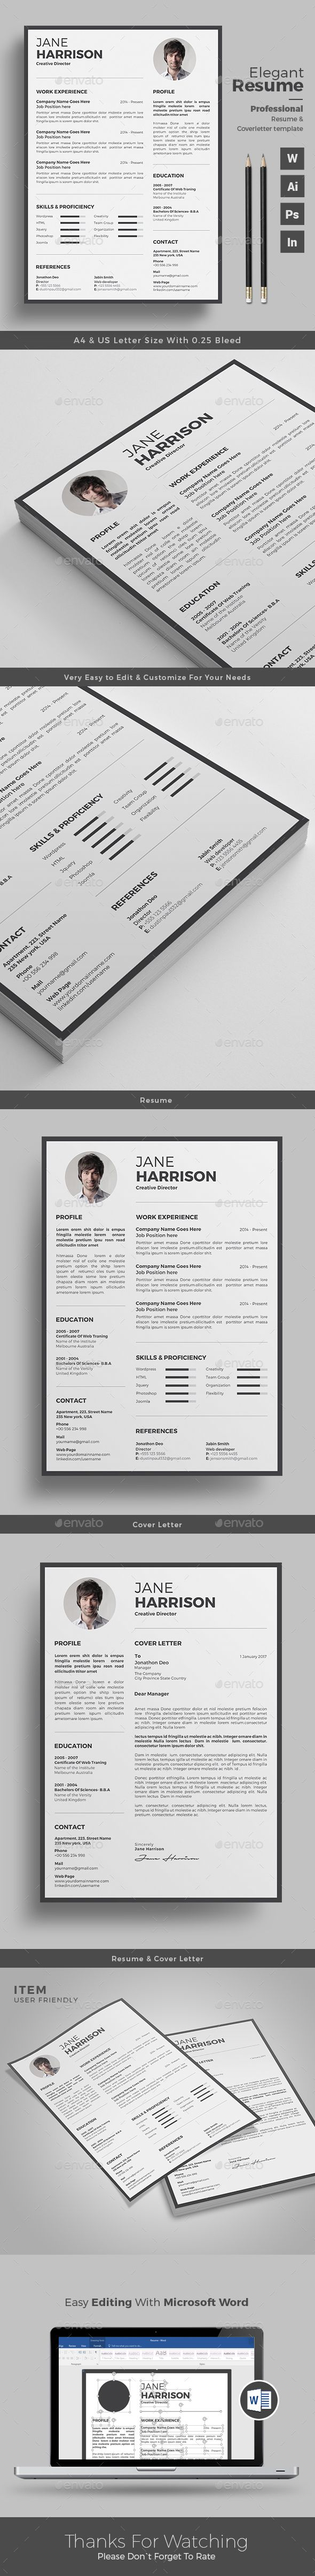 Clean Resume/CV Word template, Resume template